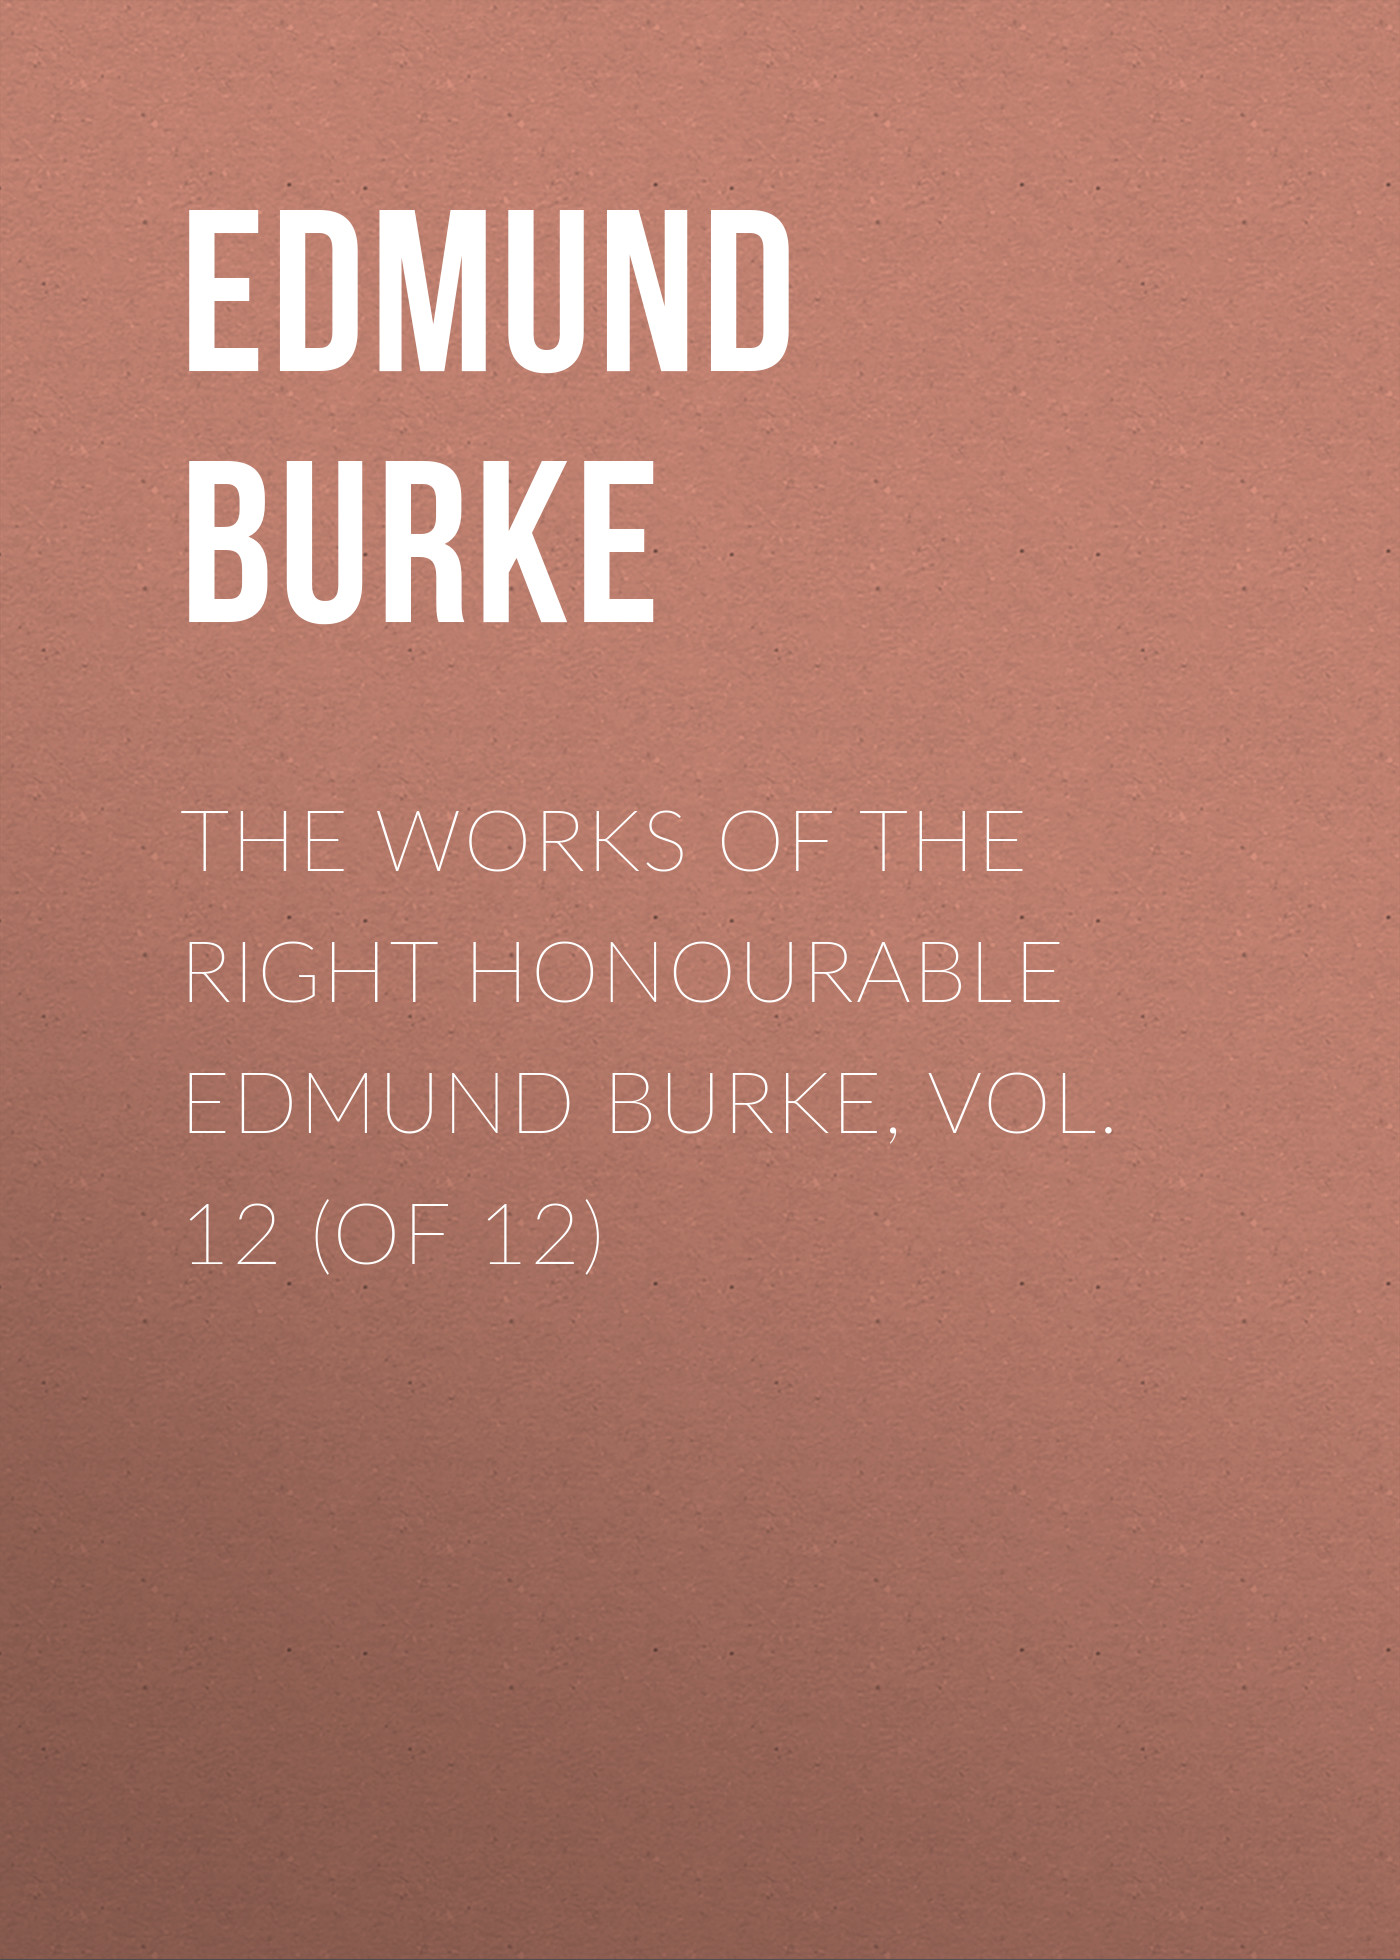 Edmund Burke The Works of the Right Honourable Edmund Burke, Vol. 12 (of 12) edmund burke the works of the right honourable edmund burke vol 02 of 12